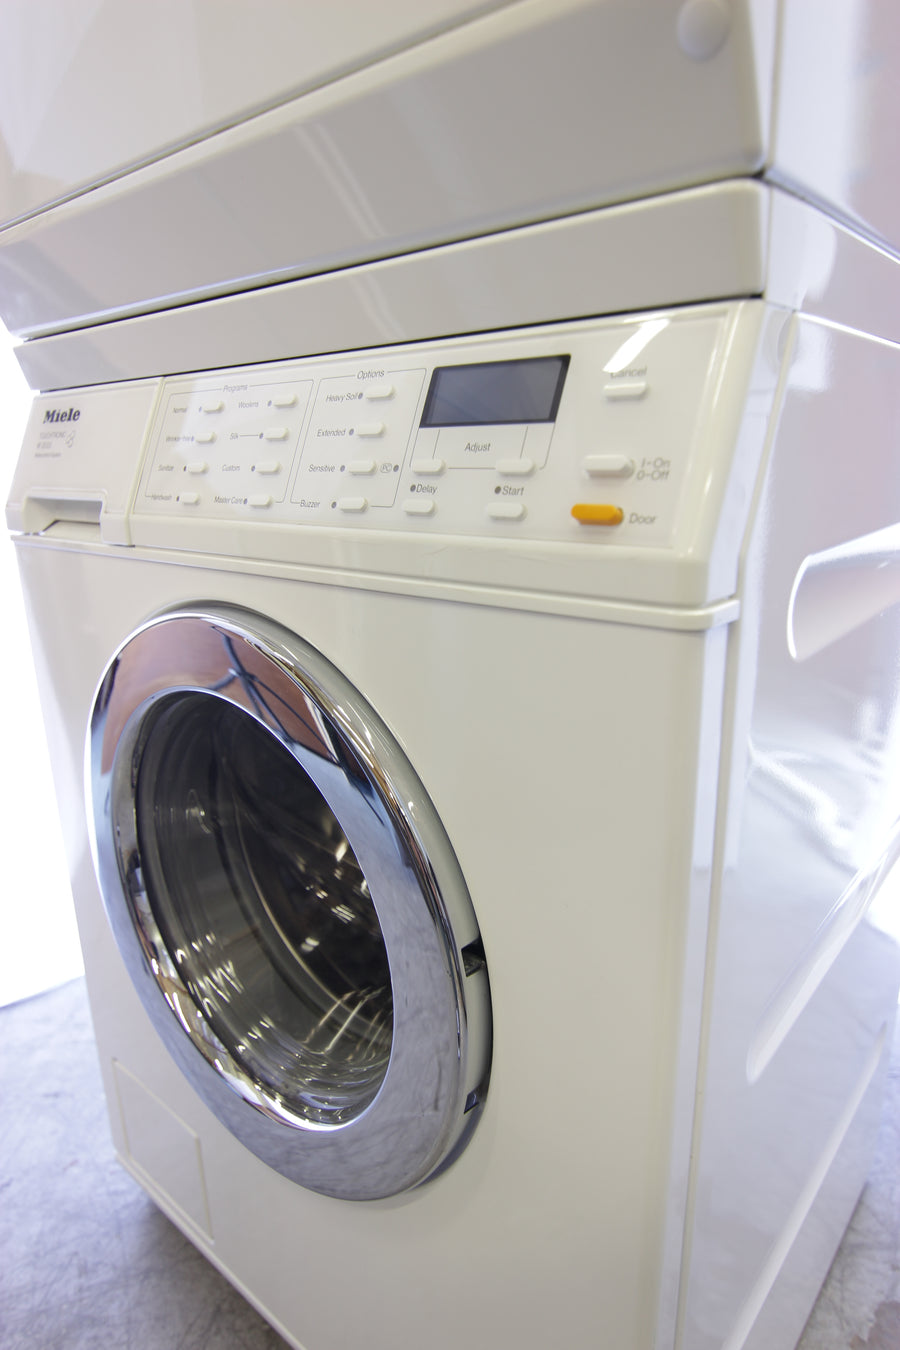 Miele T8003 and W3033 Washer and Dryer